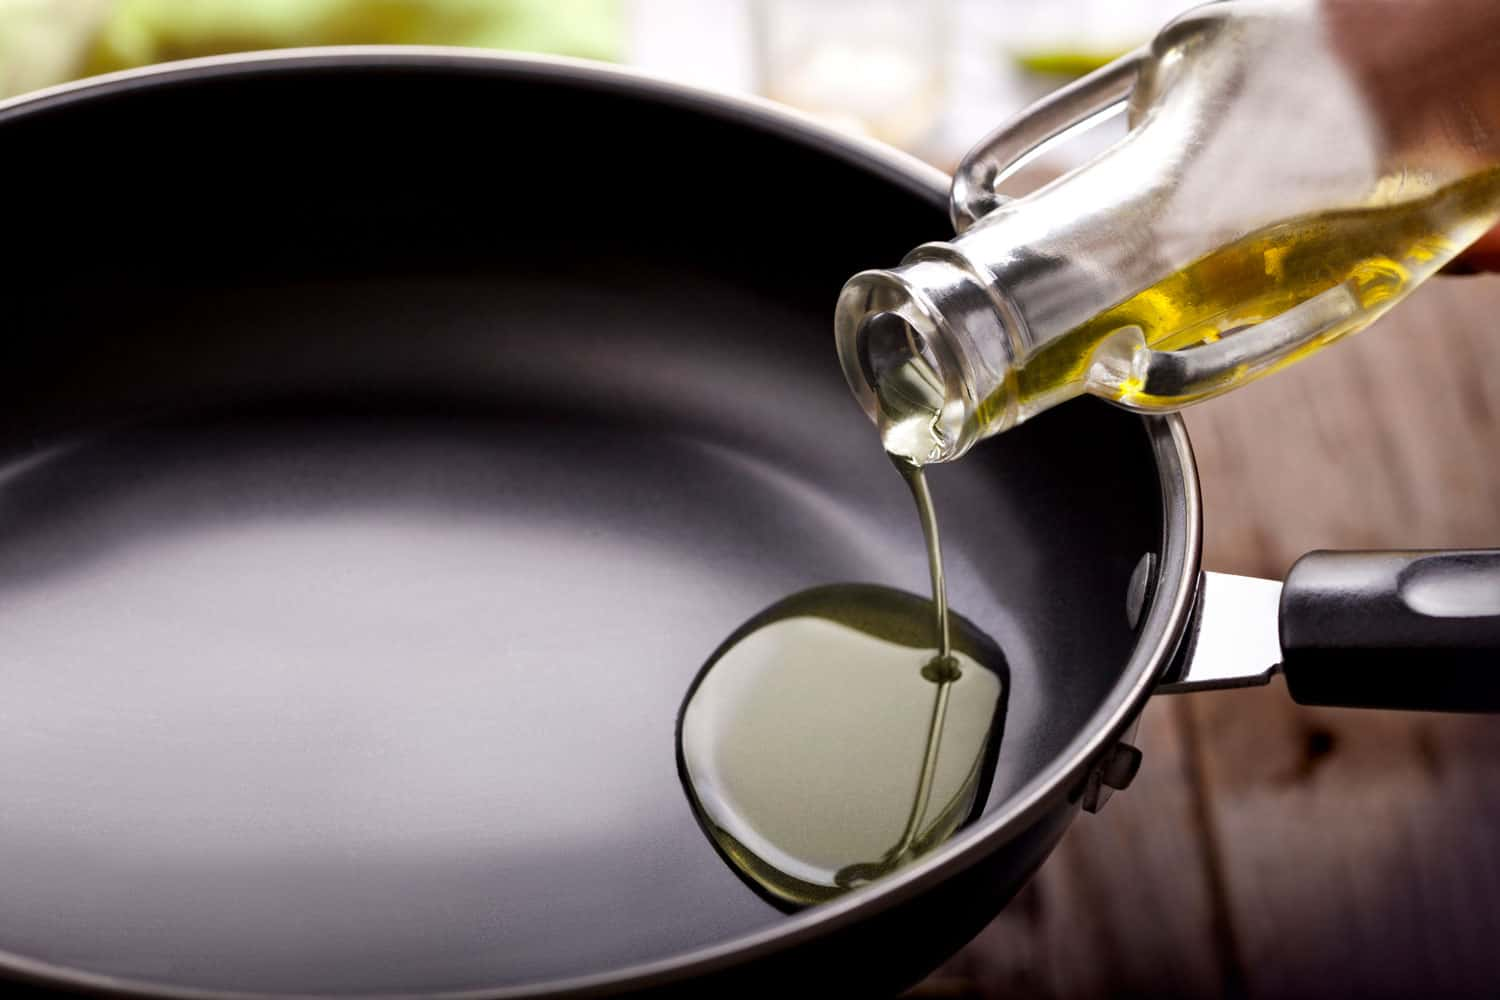 Pouring cooking oil from a glass bottle into a frying pan